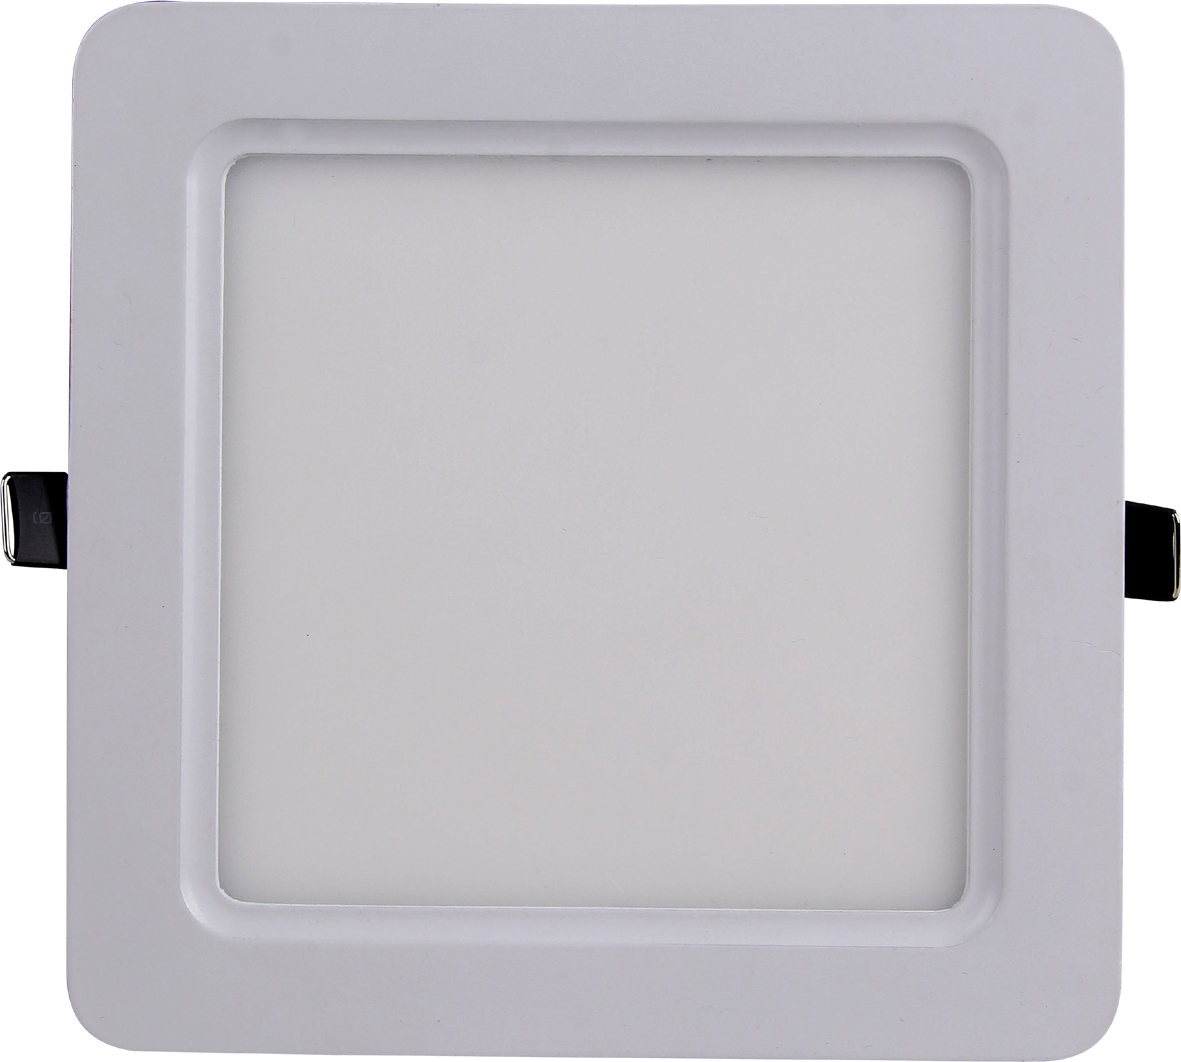 3W/5W/8W/12W/16W/20W led panel light square shape SMD2835 Aluminum material for home,office